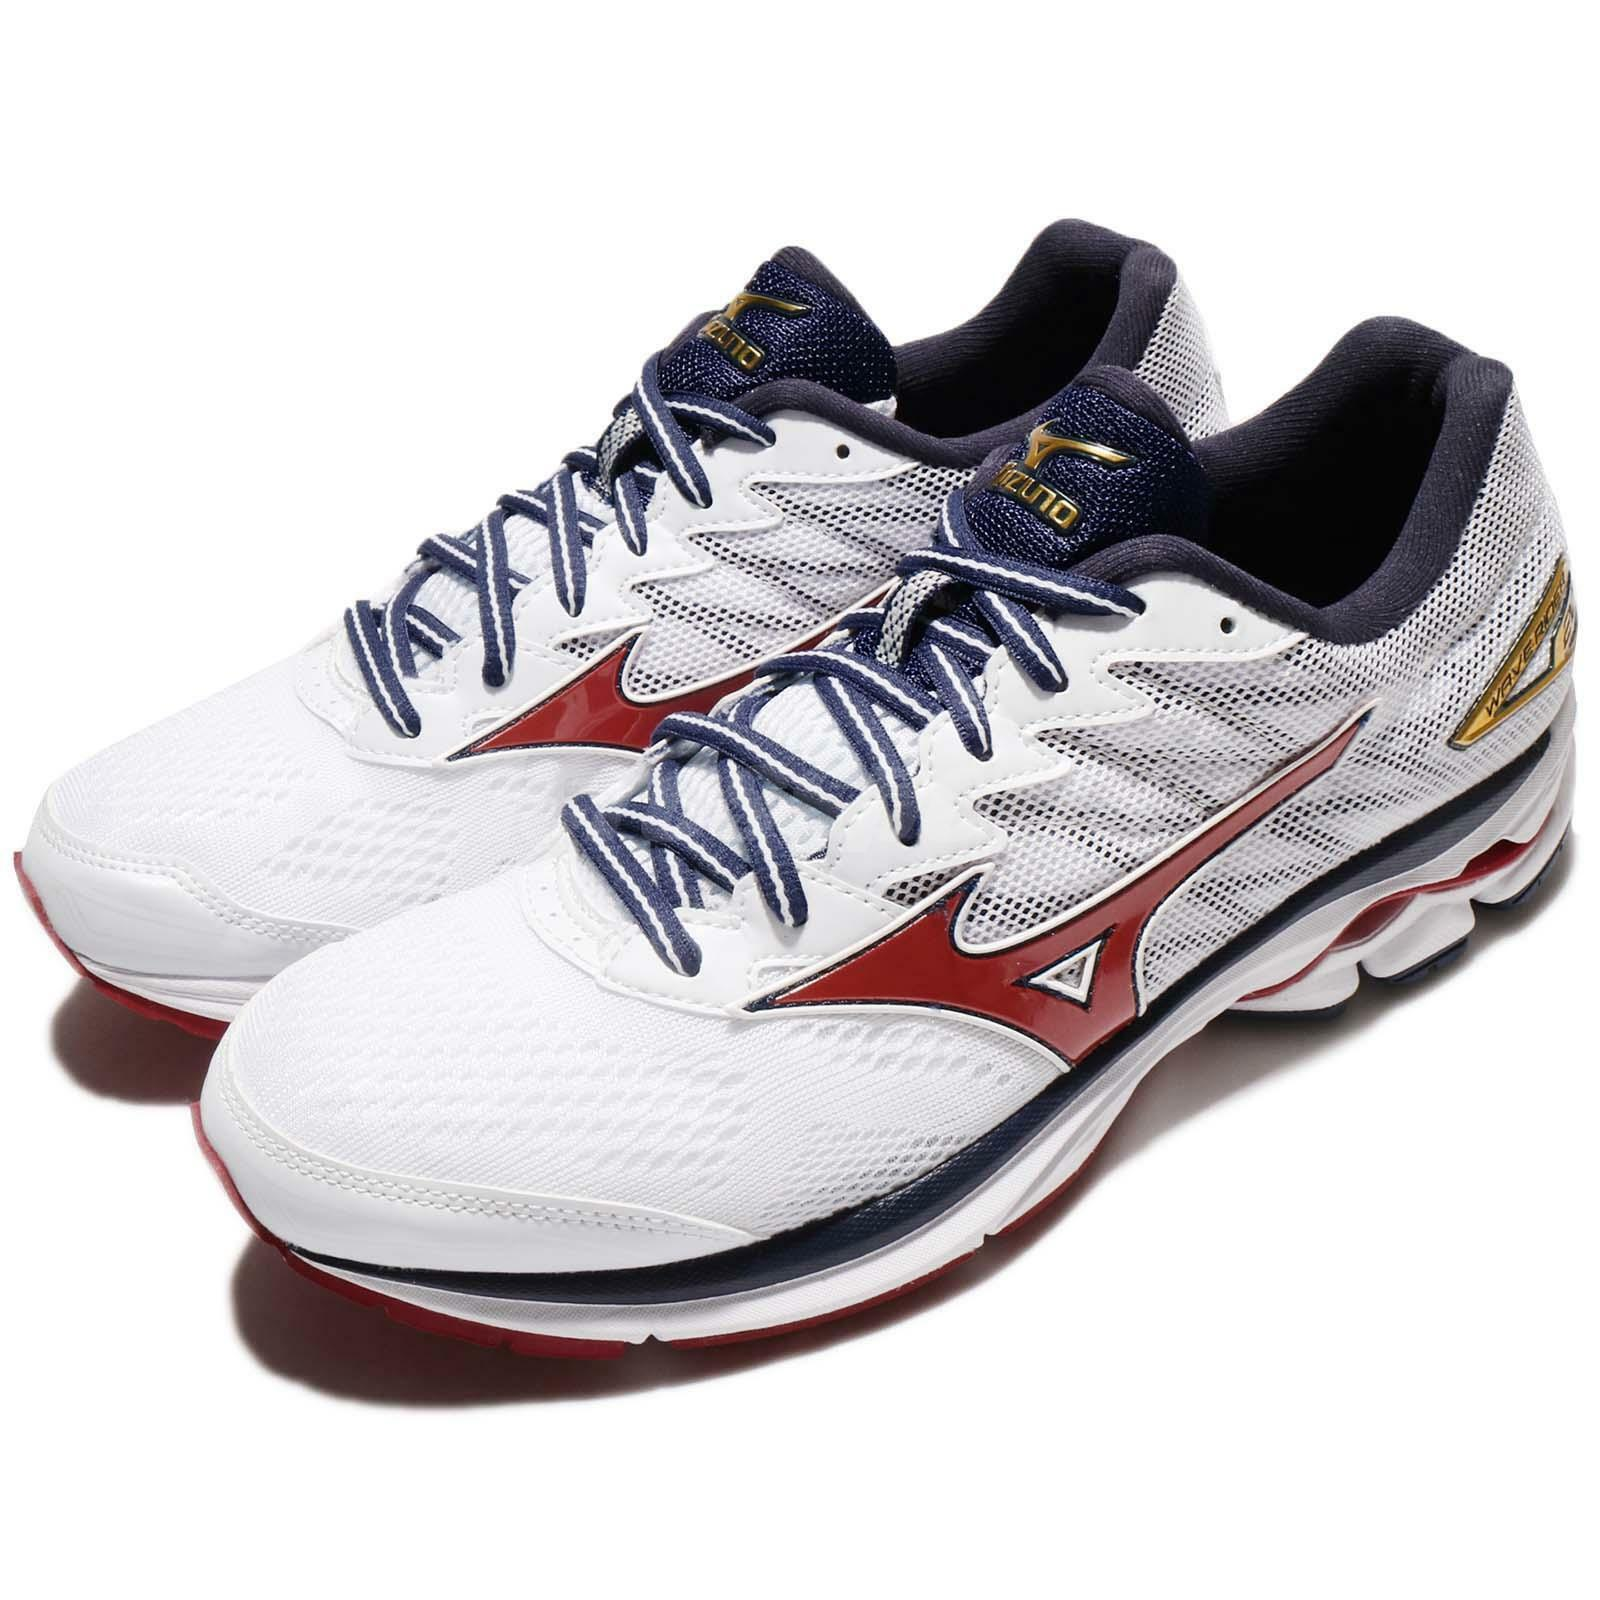 Mizuno Wave Rider 20 blanco azul rojo Men Running zapatos Trainers J1GC17-0361